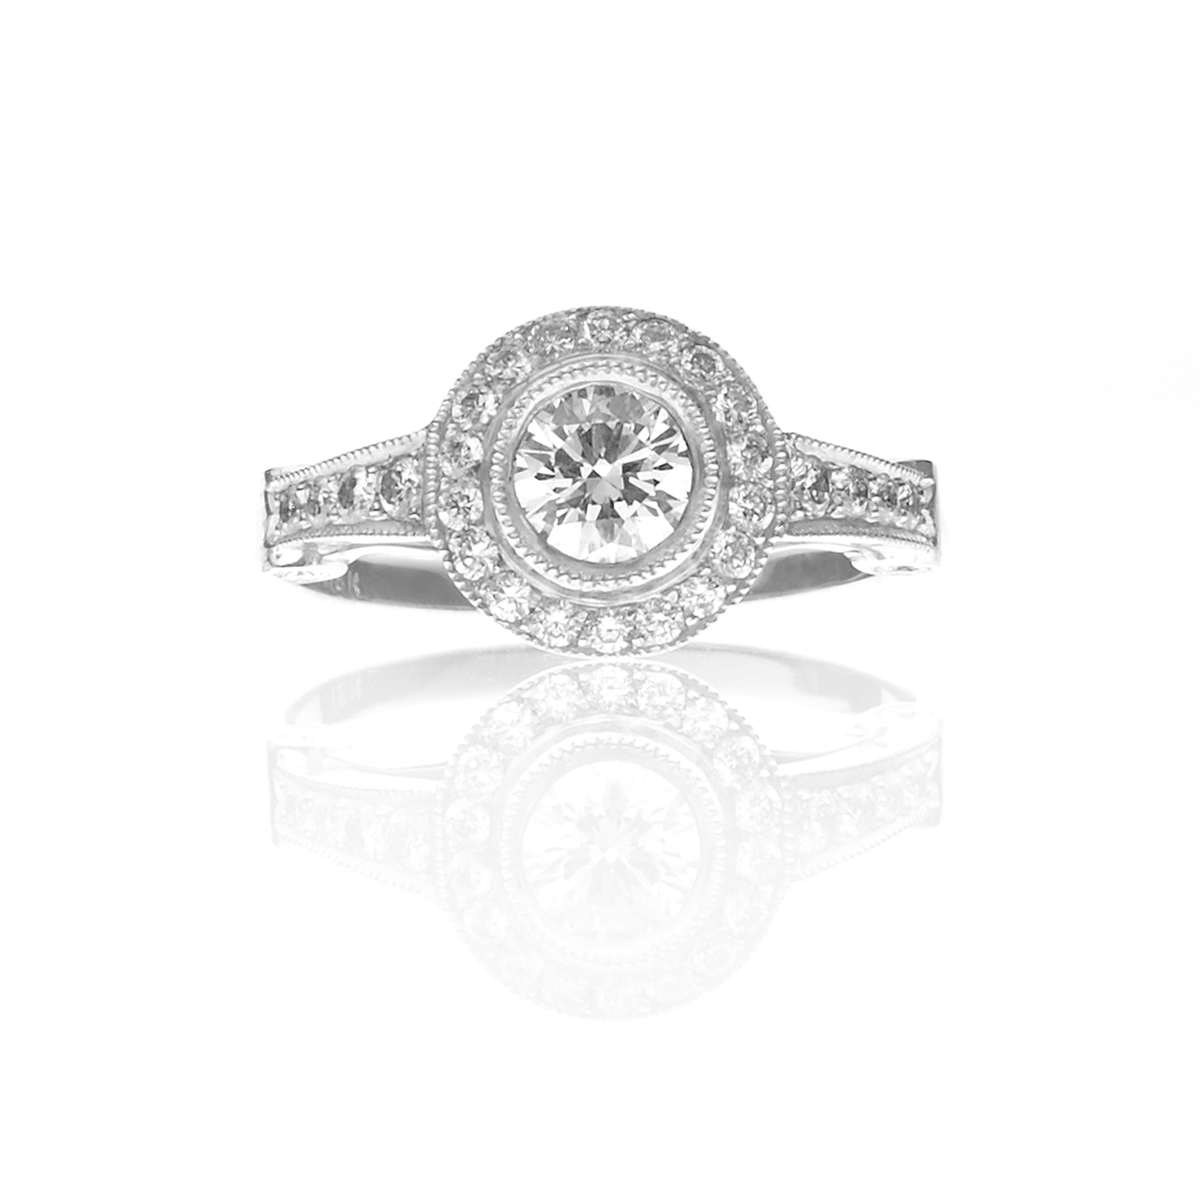 CHRIS AIRE CARAT DIAMOND ENGAGEMENT RING - Chris Aire Fine Jewelry & Timepieces